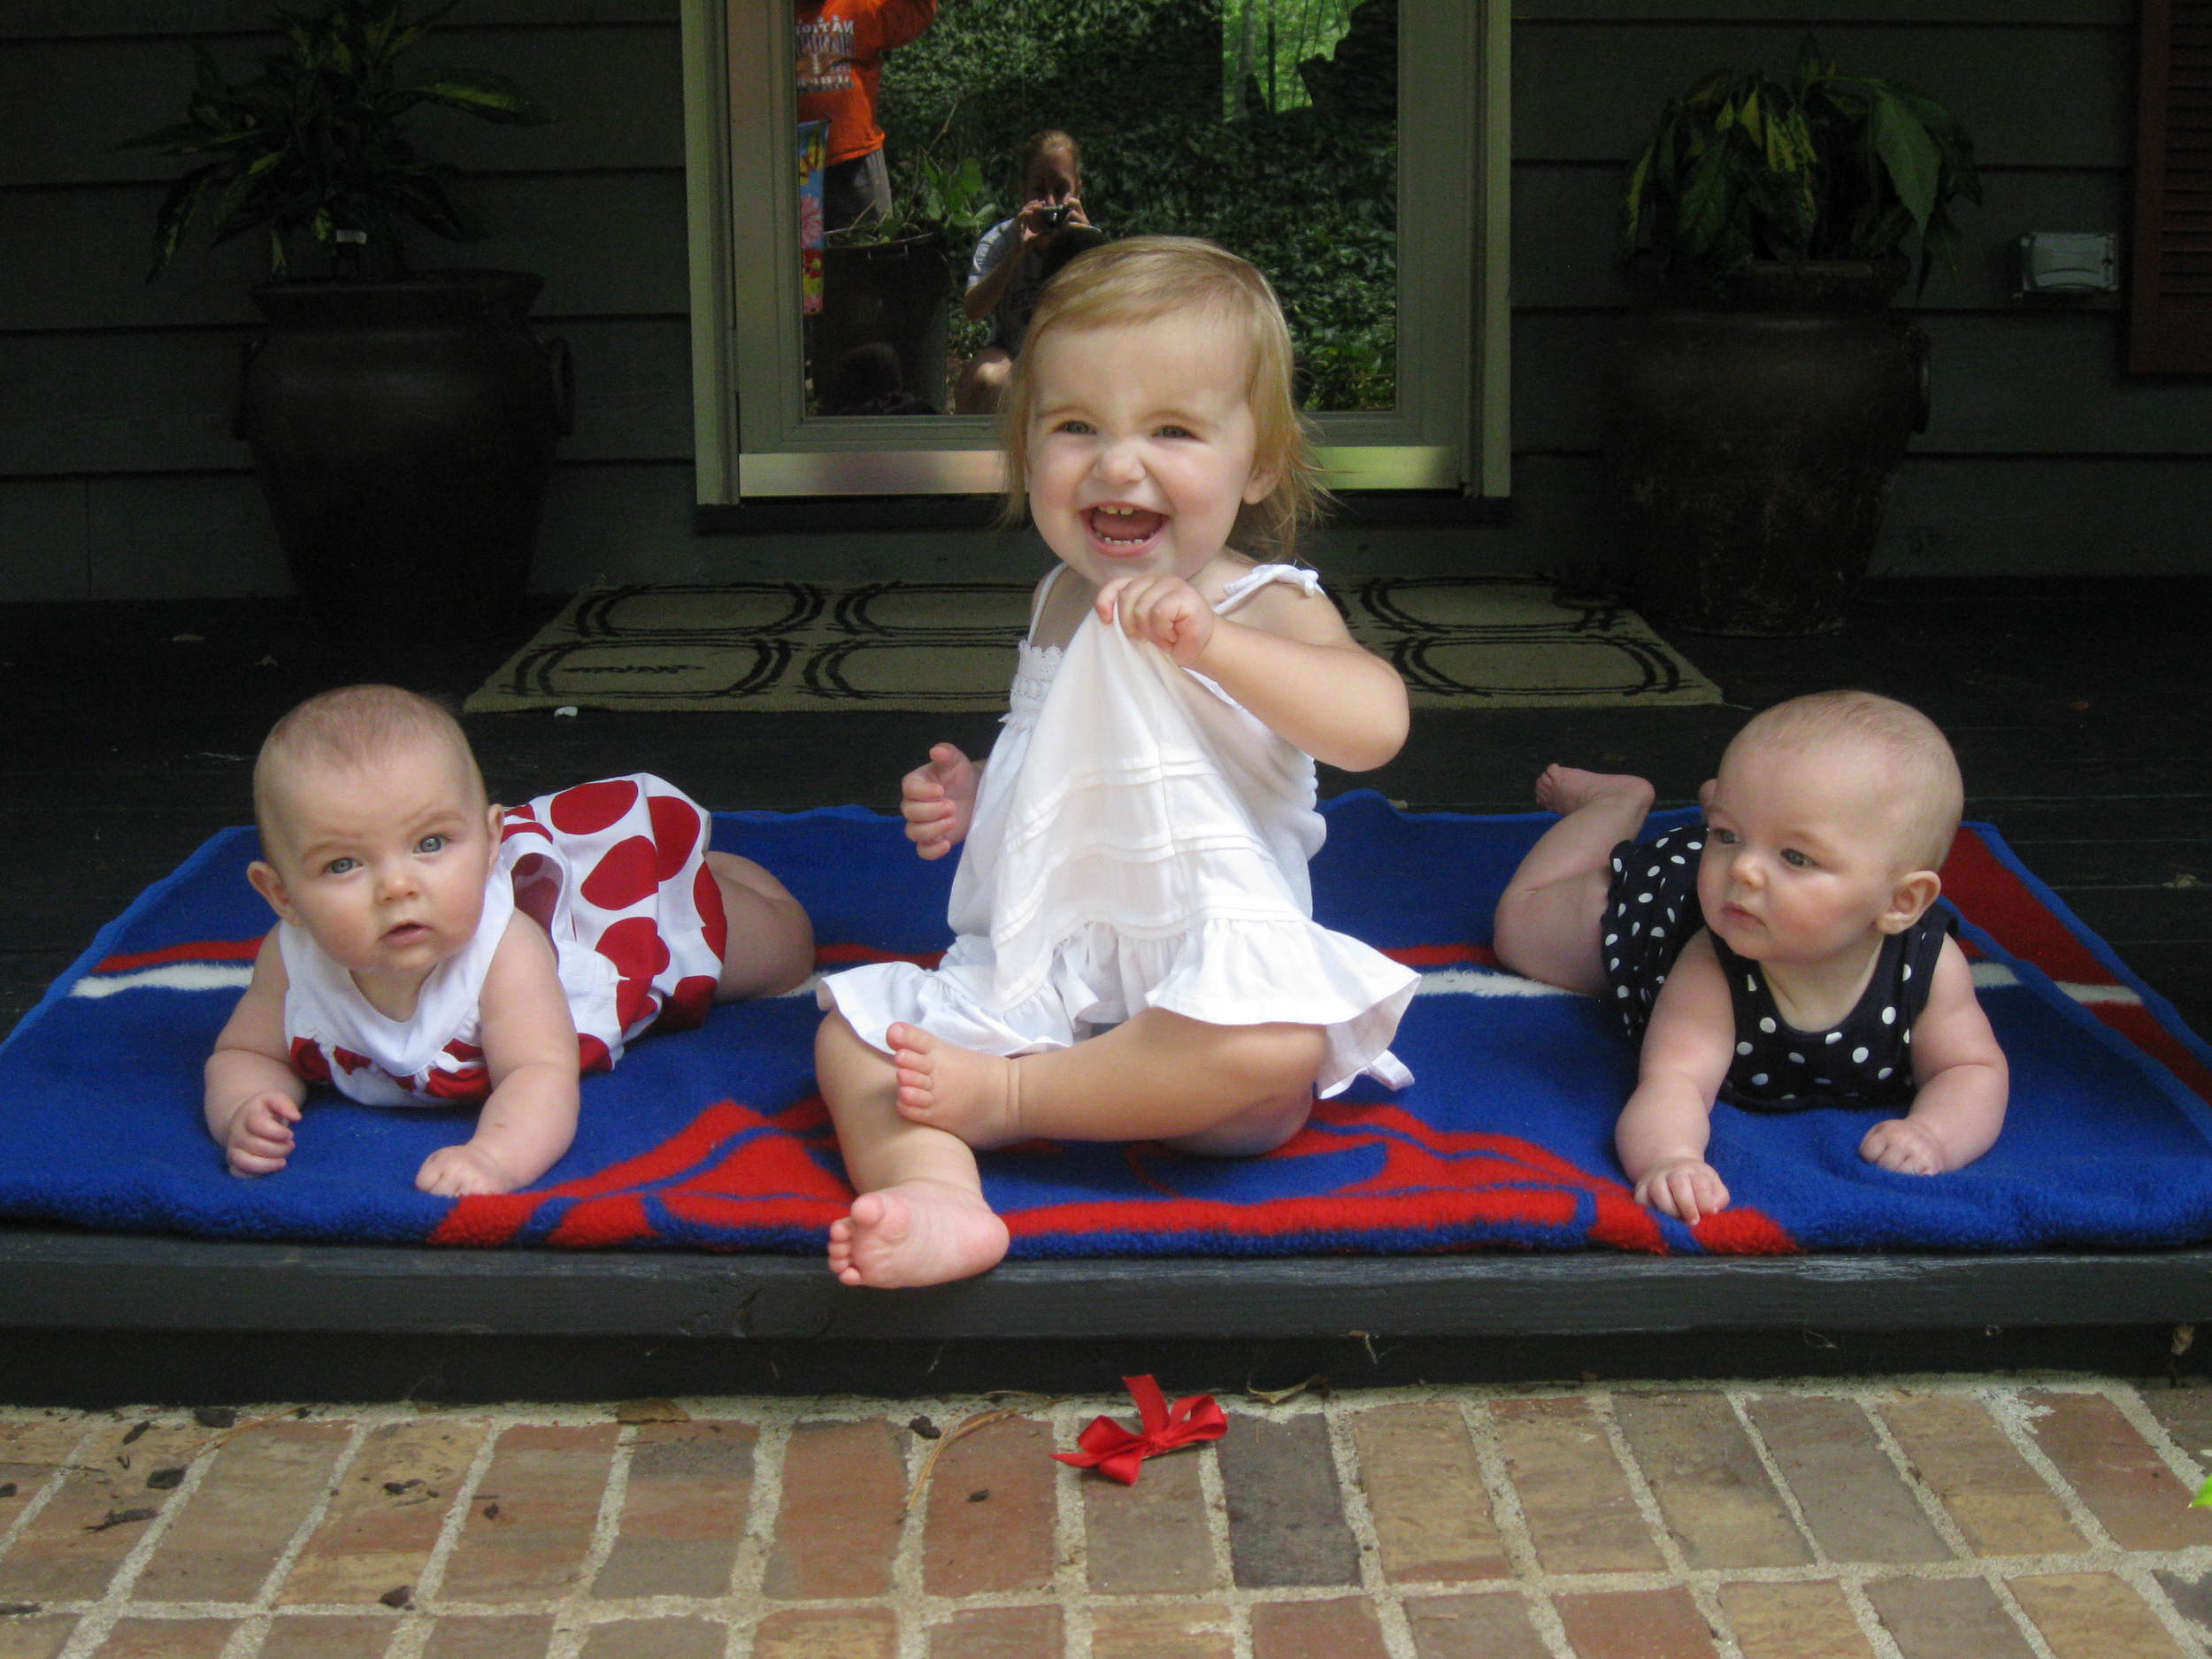 070412_Ella and Avery with Paige 4th of July.JPG